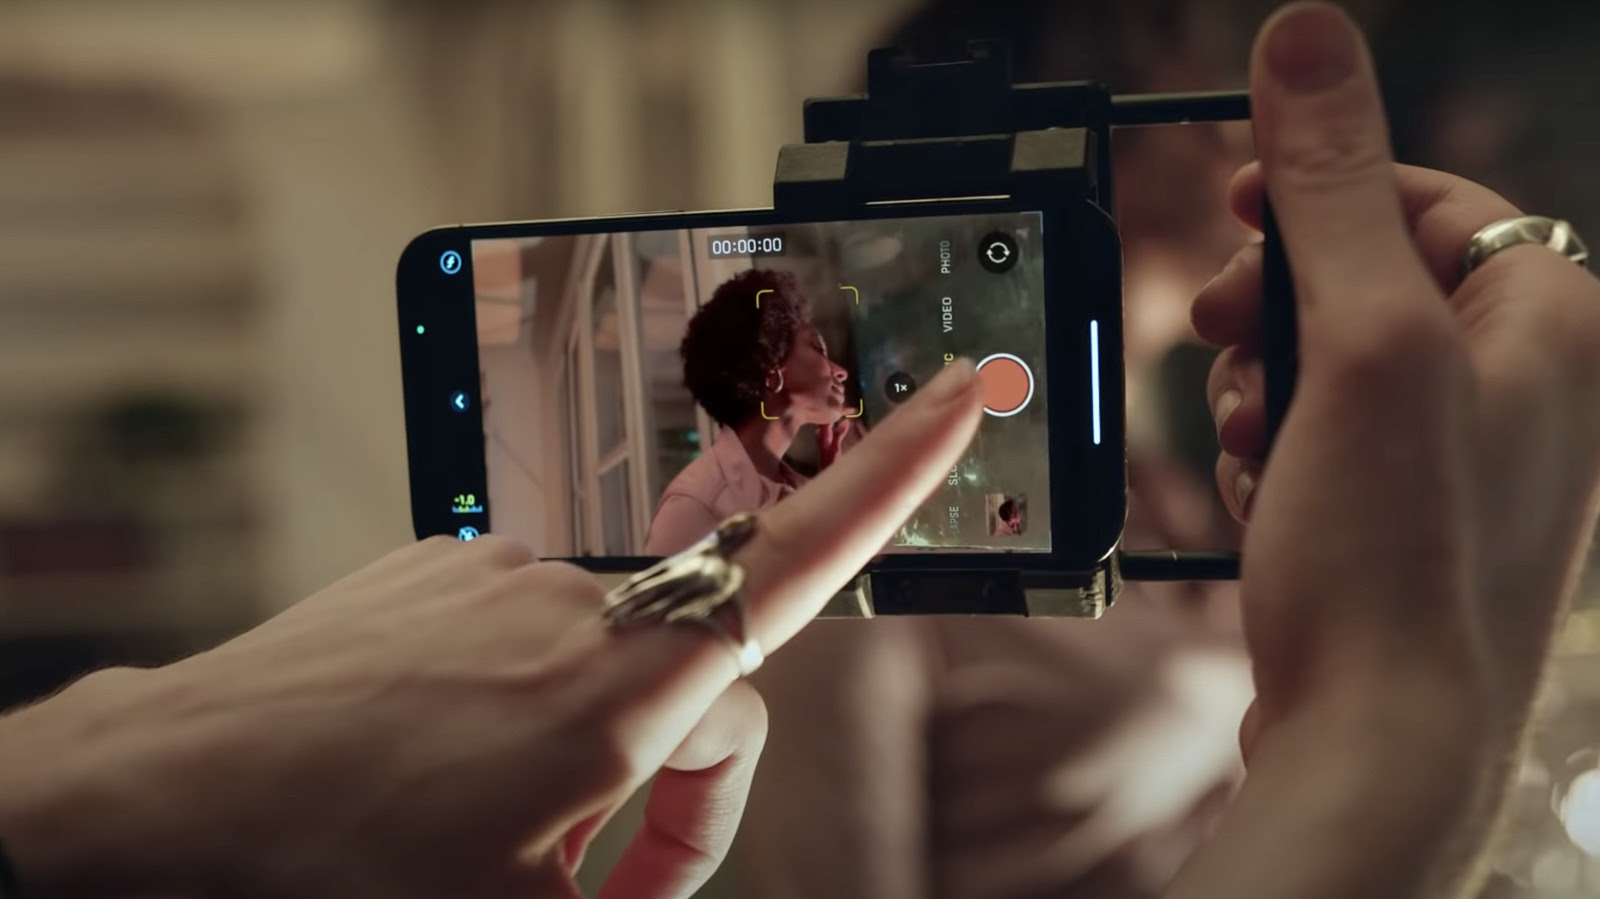 Watch Kathryn Bigelow Direct A Scene With The New iPhone